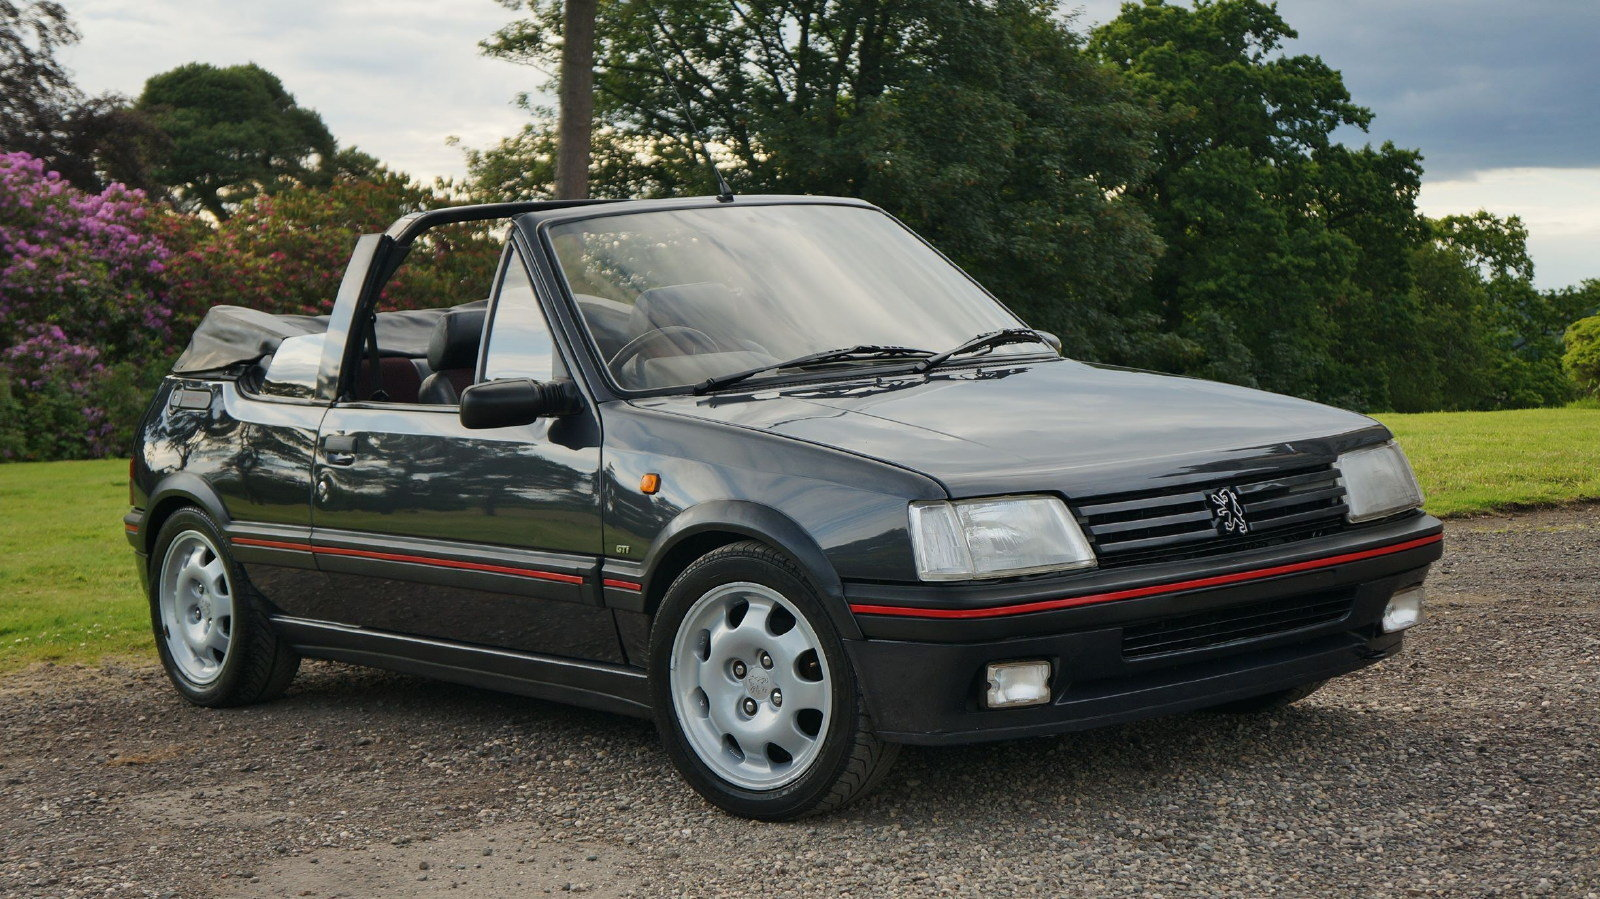 1993 Peugeot 205 CTi 1.9 GTI Convertible Cabriolet For Sale (picture 1 of 6)